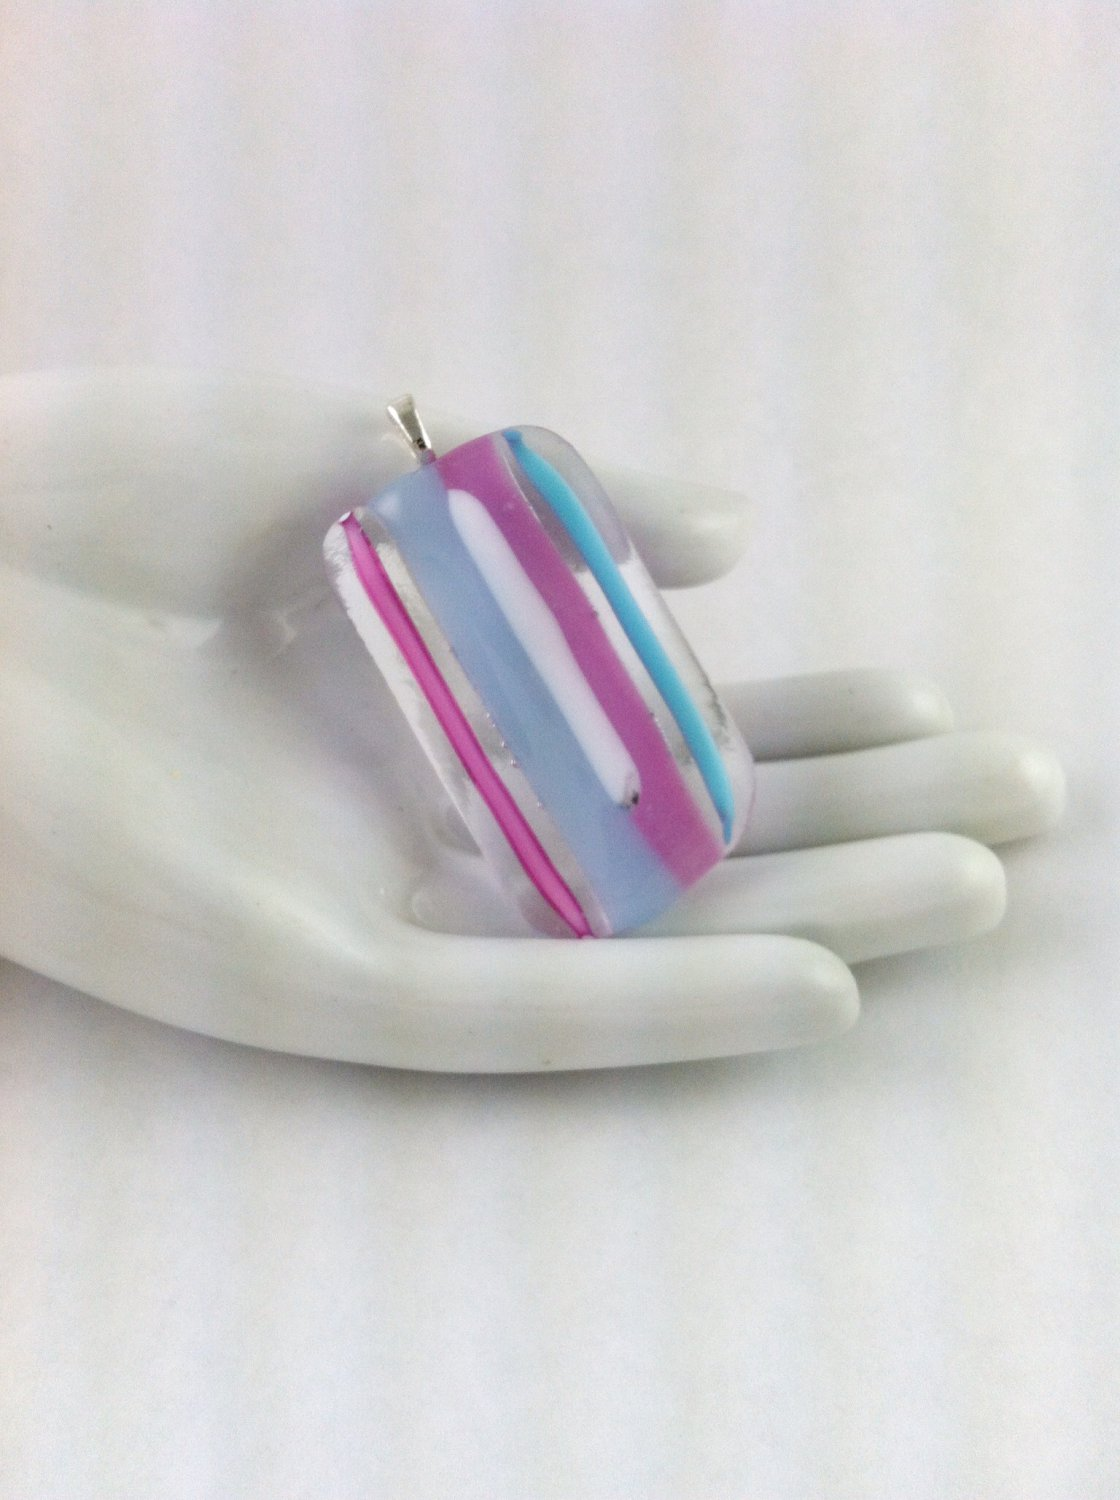 Fused Glass Pastel Colors Pendant on A  Leather Cord Necklace      Hand Crafted Jewelry